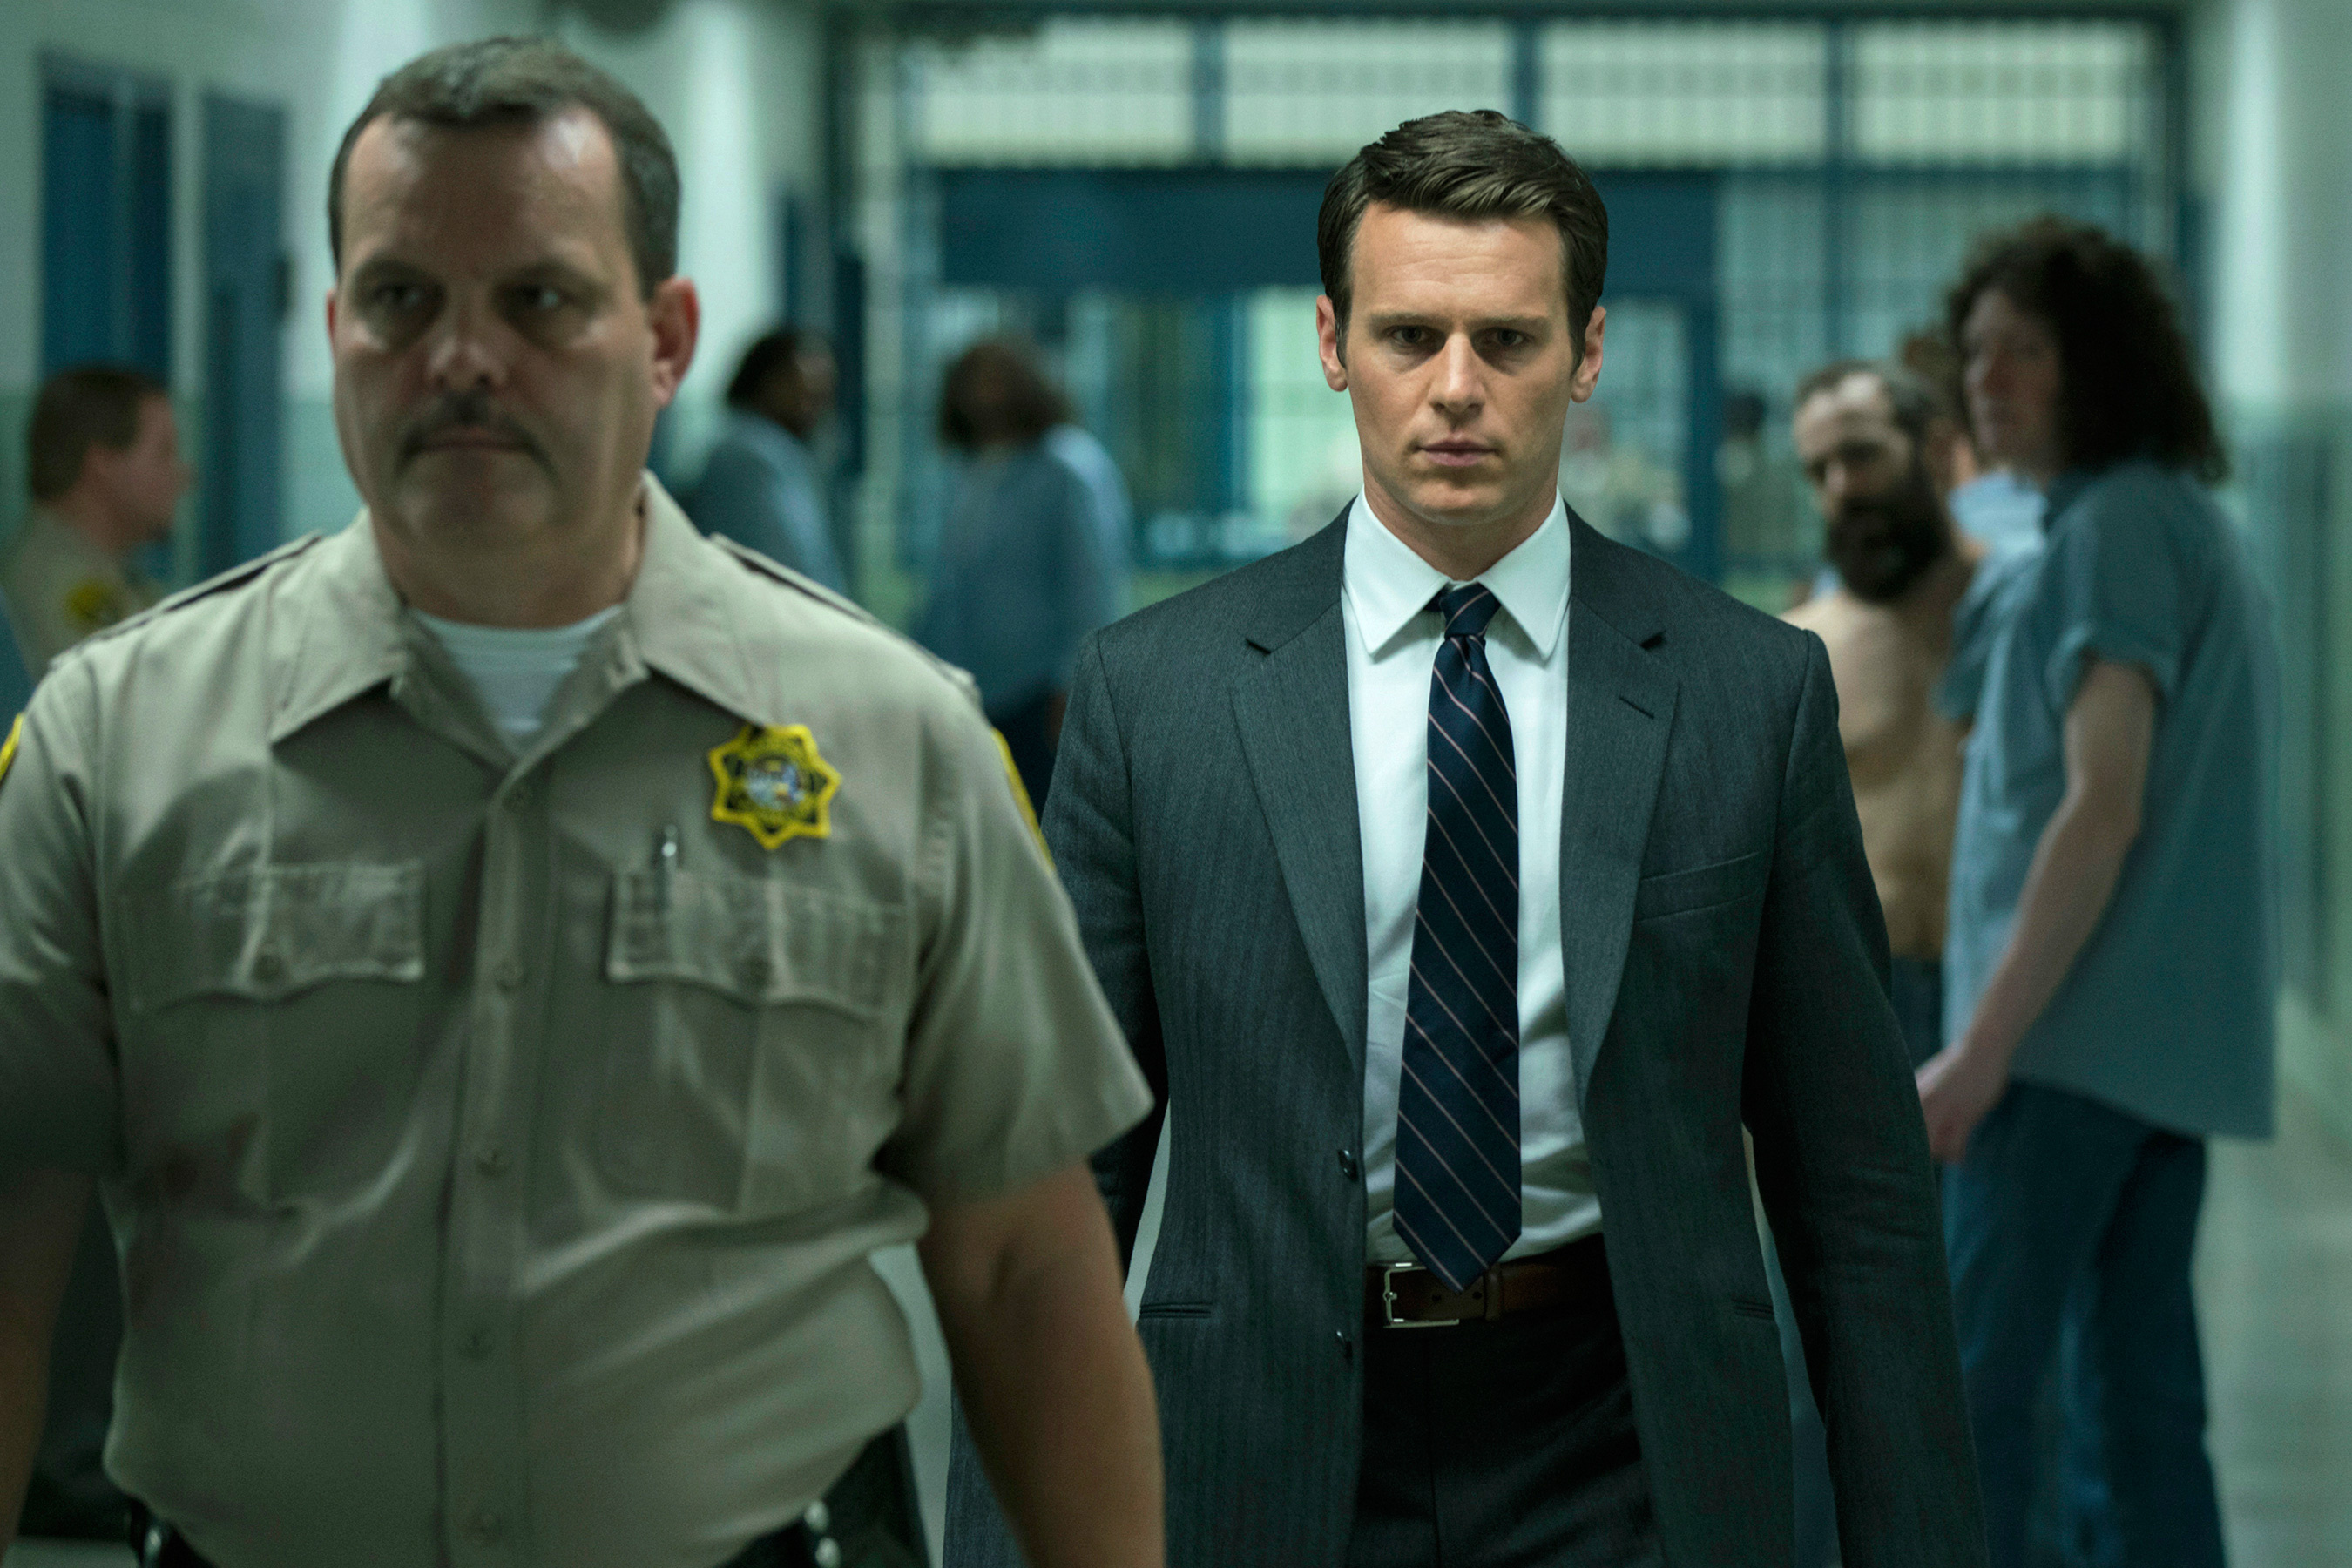 5 FACTS YOU DON'T KNOW ABOUT MINDHUNTER